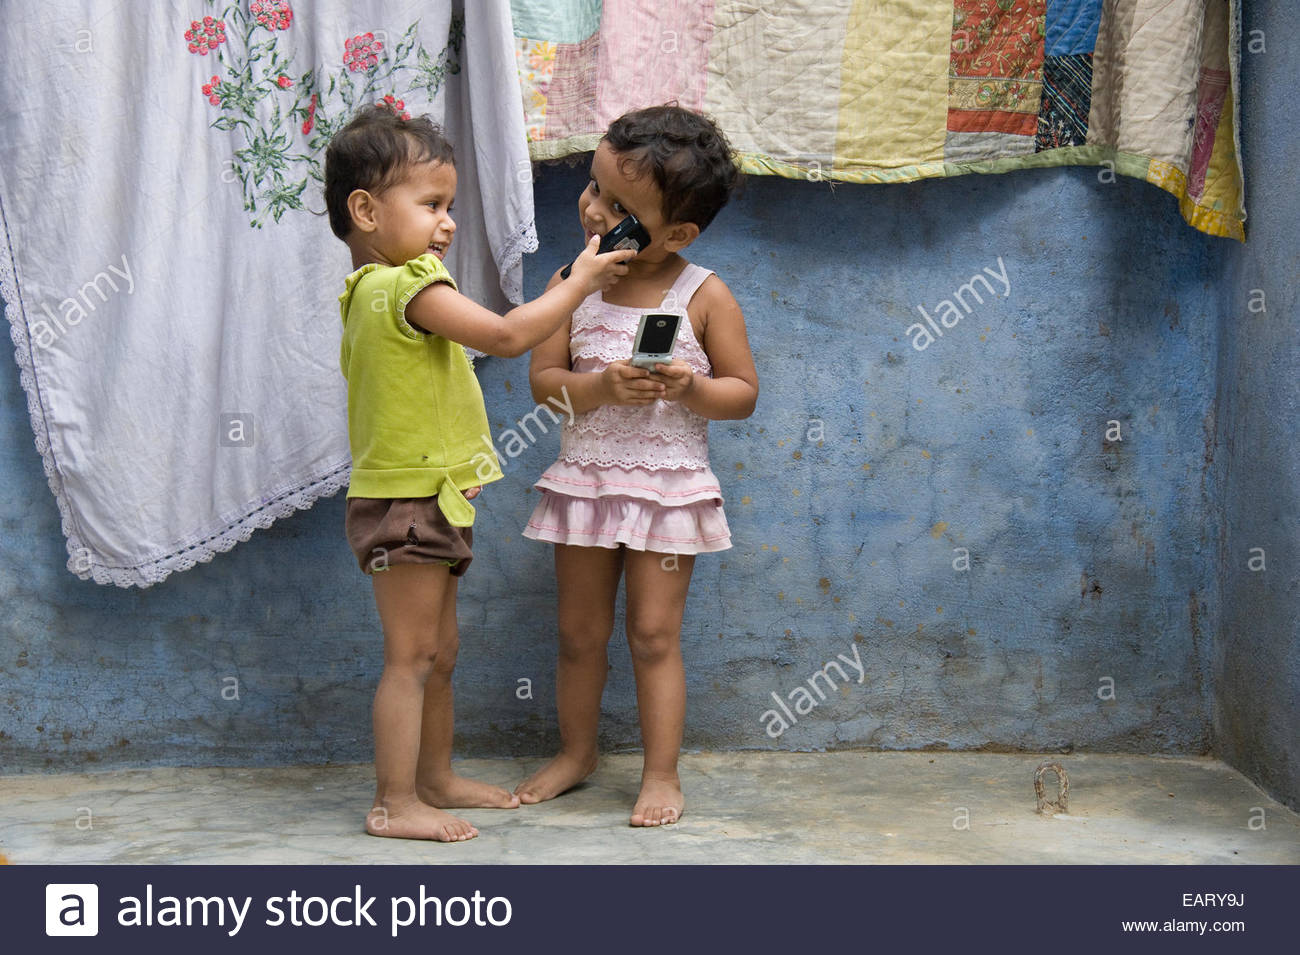 Twin girls play with mobile telephones outside their home. - Stock Image